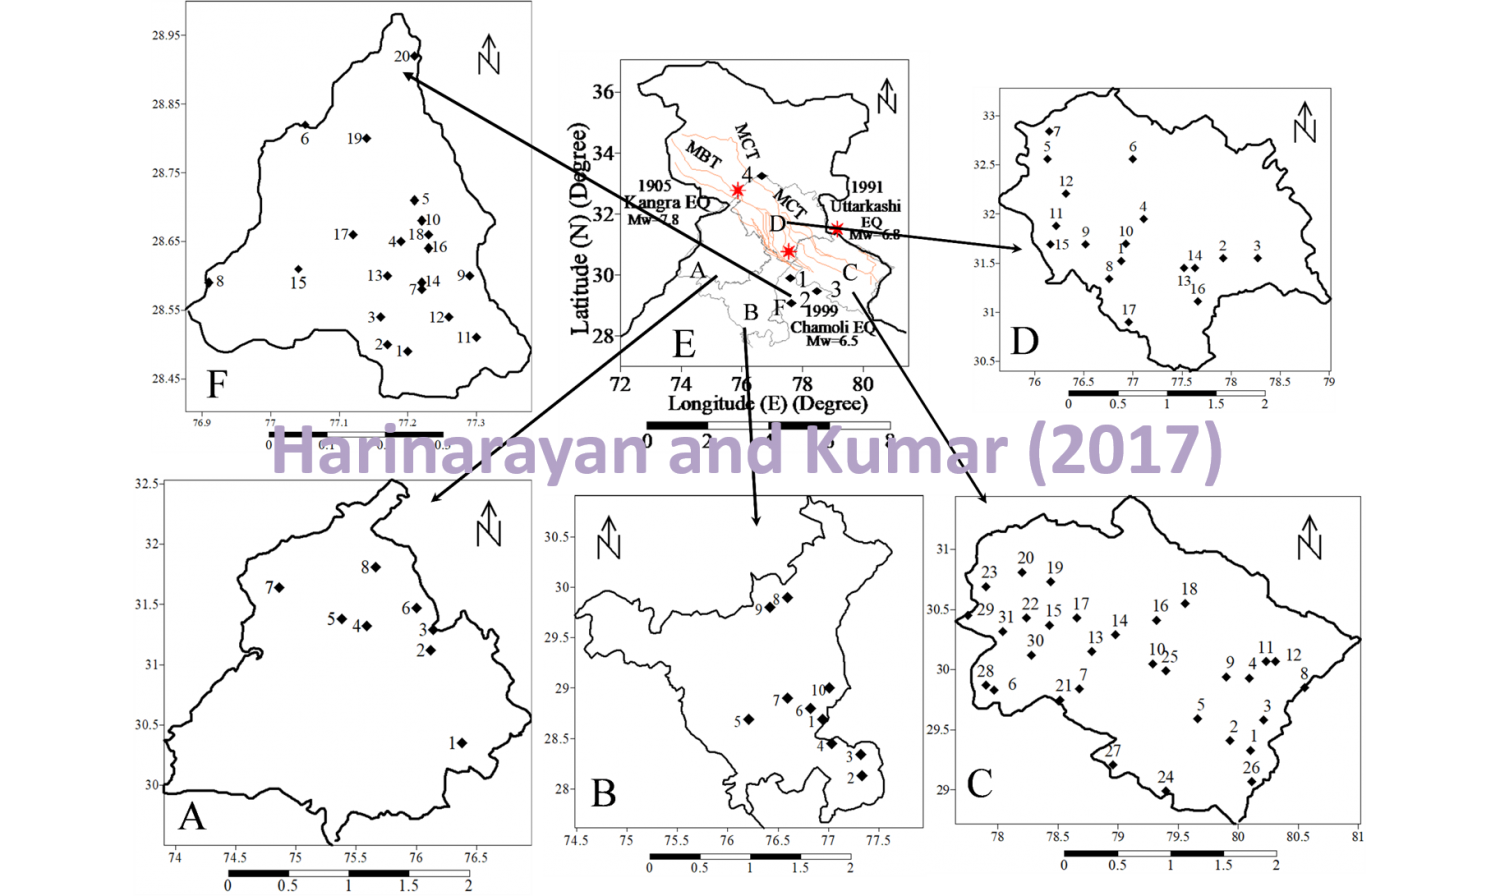 Location of PESMOS recording stations used in the present study area (Note: A-Punjab; B-Haryana; C-Uttarakhand; D-Himachal Pradesh; E presents recording stations 1, 2, 3 from Uttar Pradesh and 4 from Jammu & Kashmir; F-Delhi)